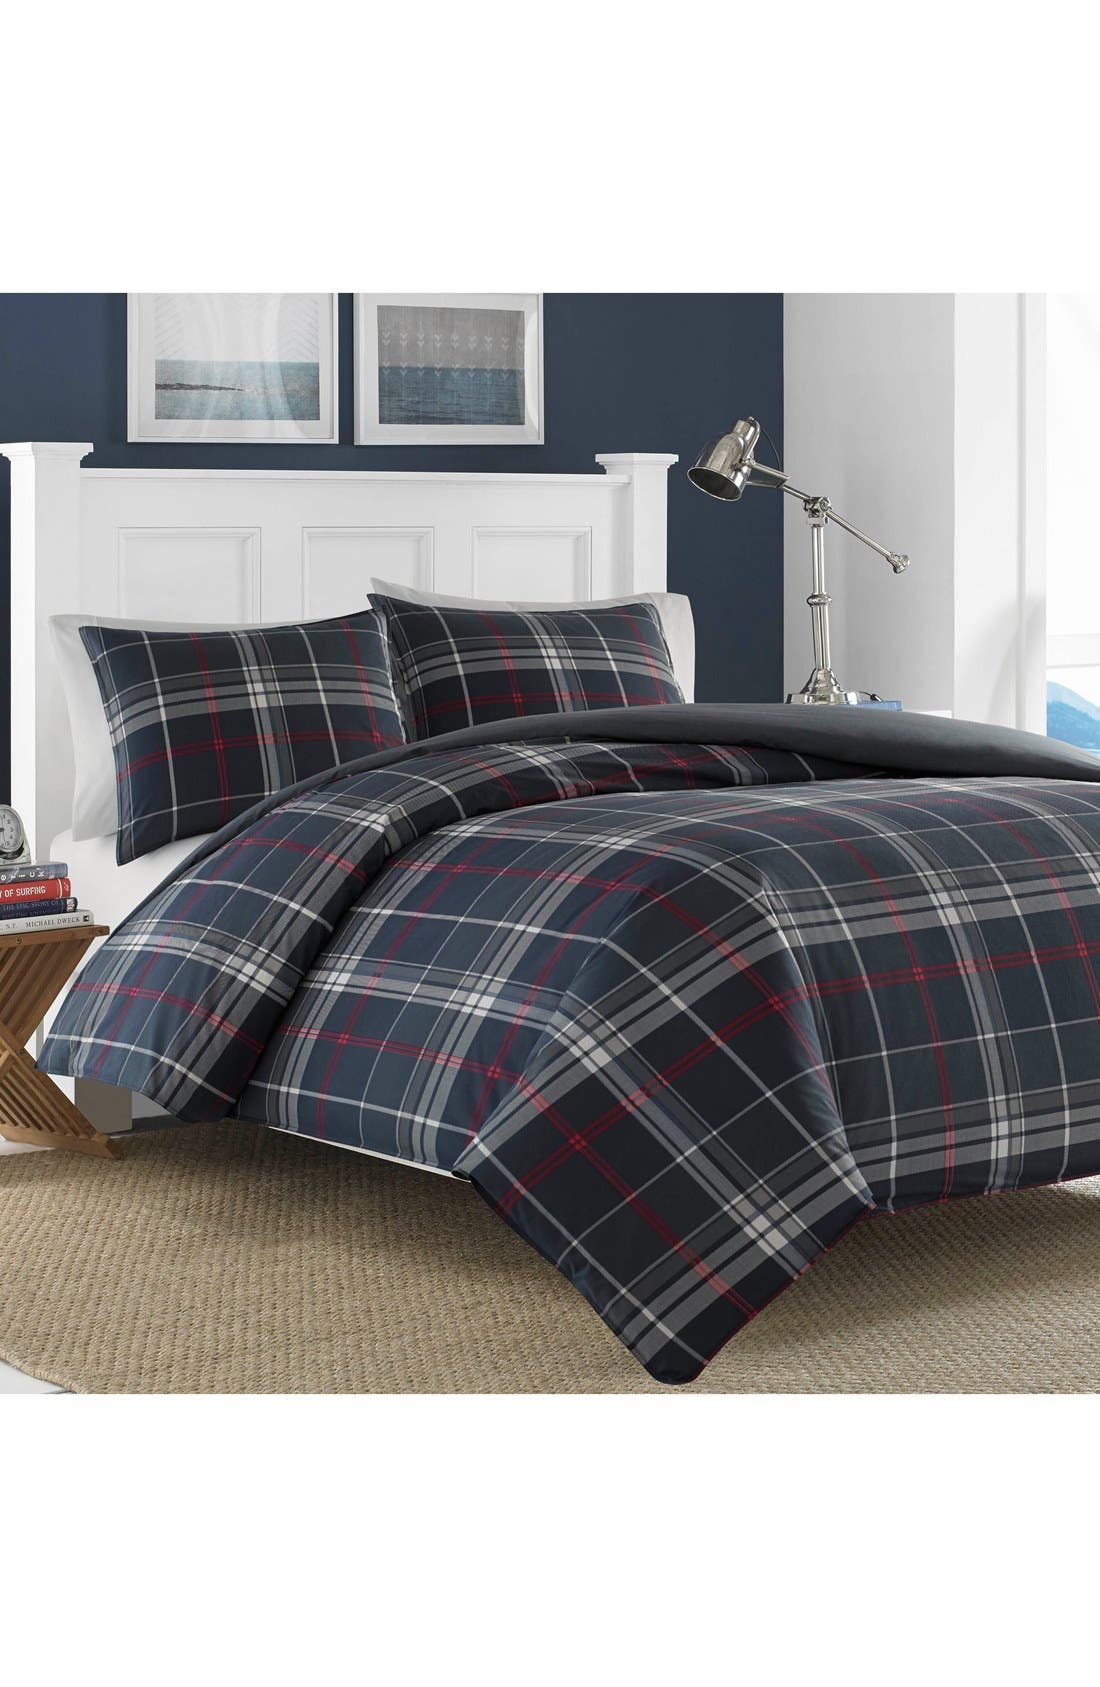 Main Image - Nautica Booker Cotton Comforter & Sham Set